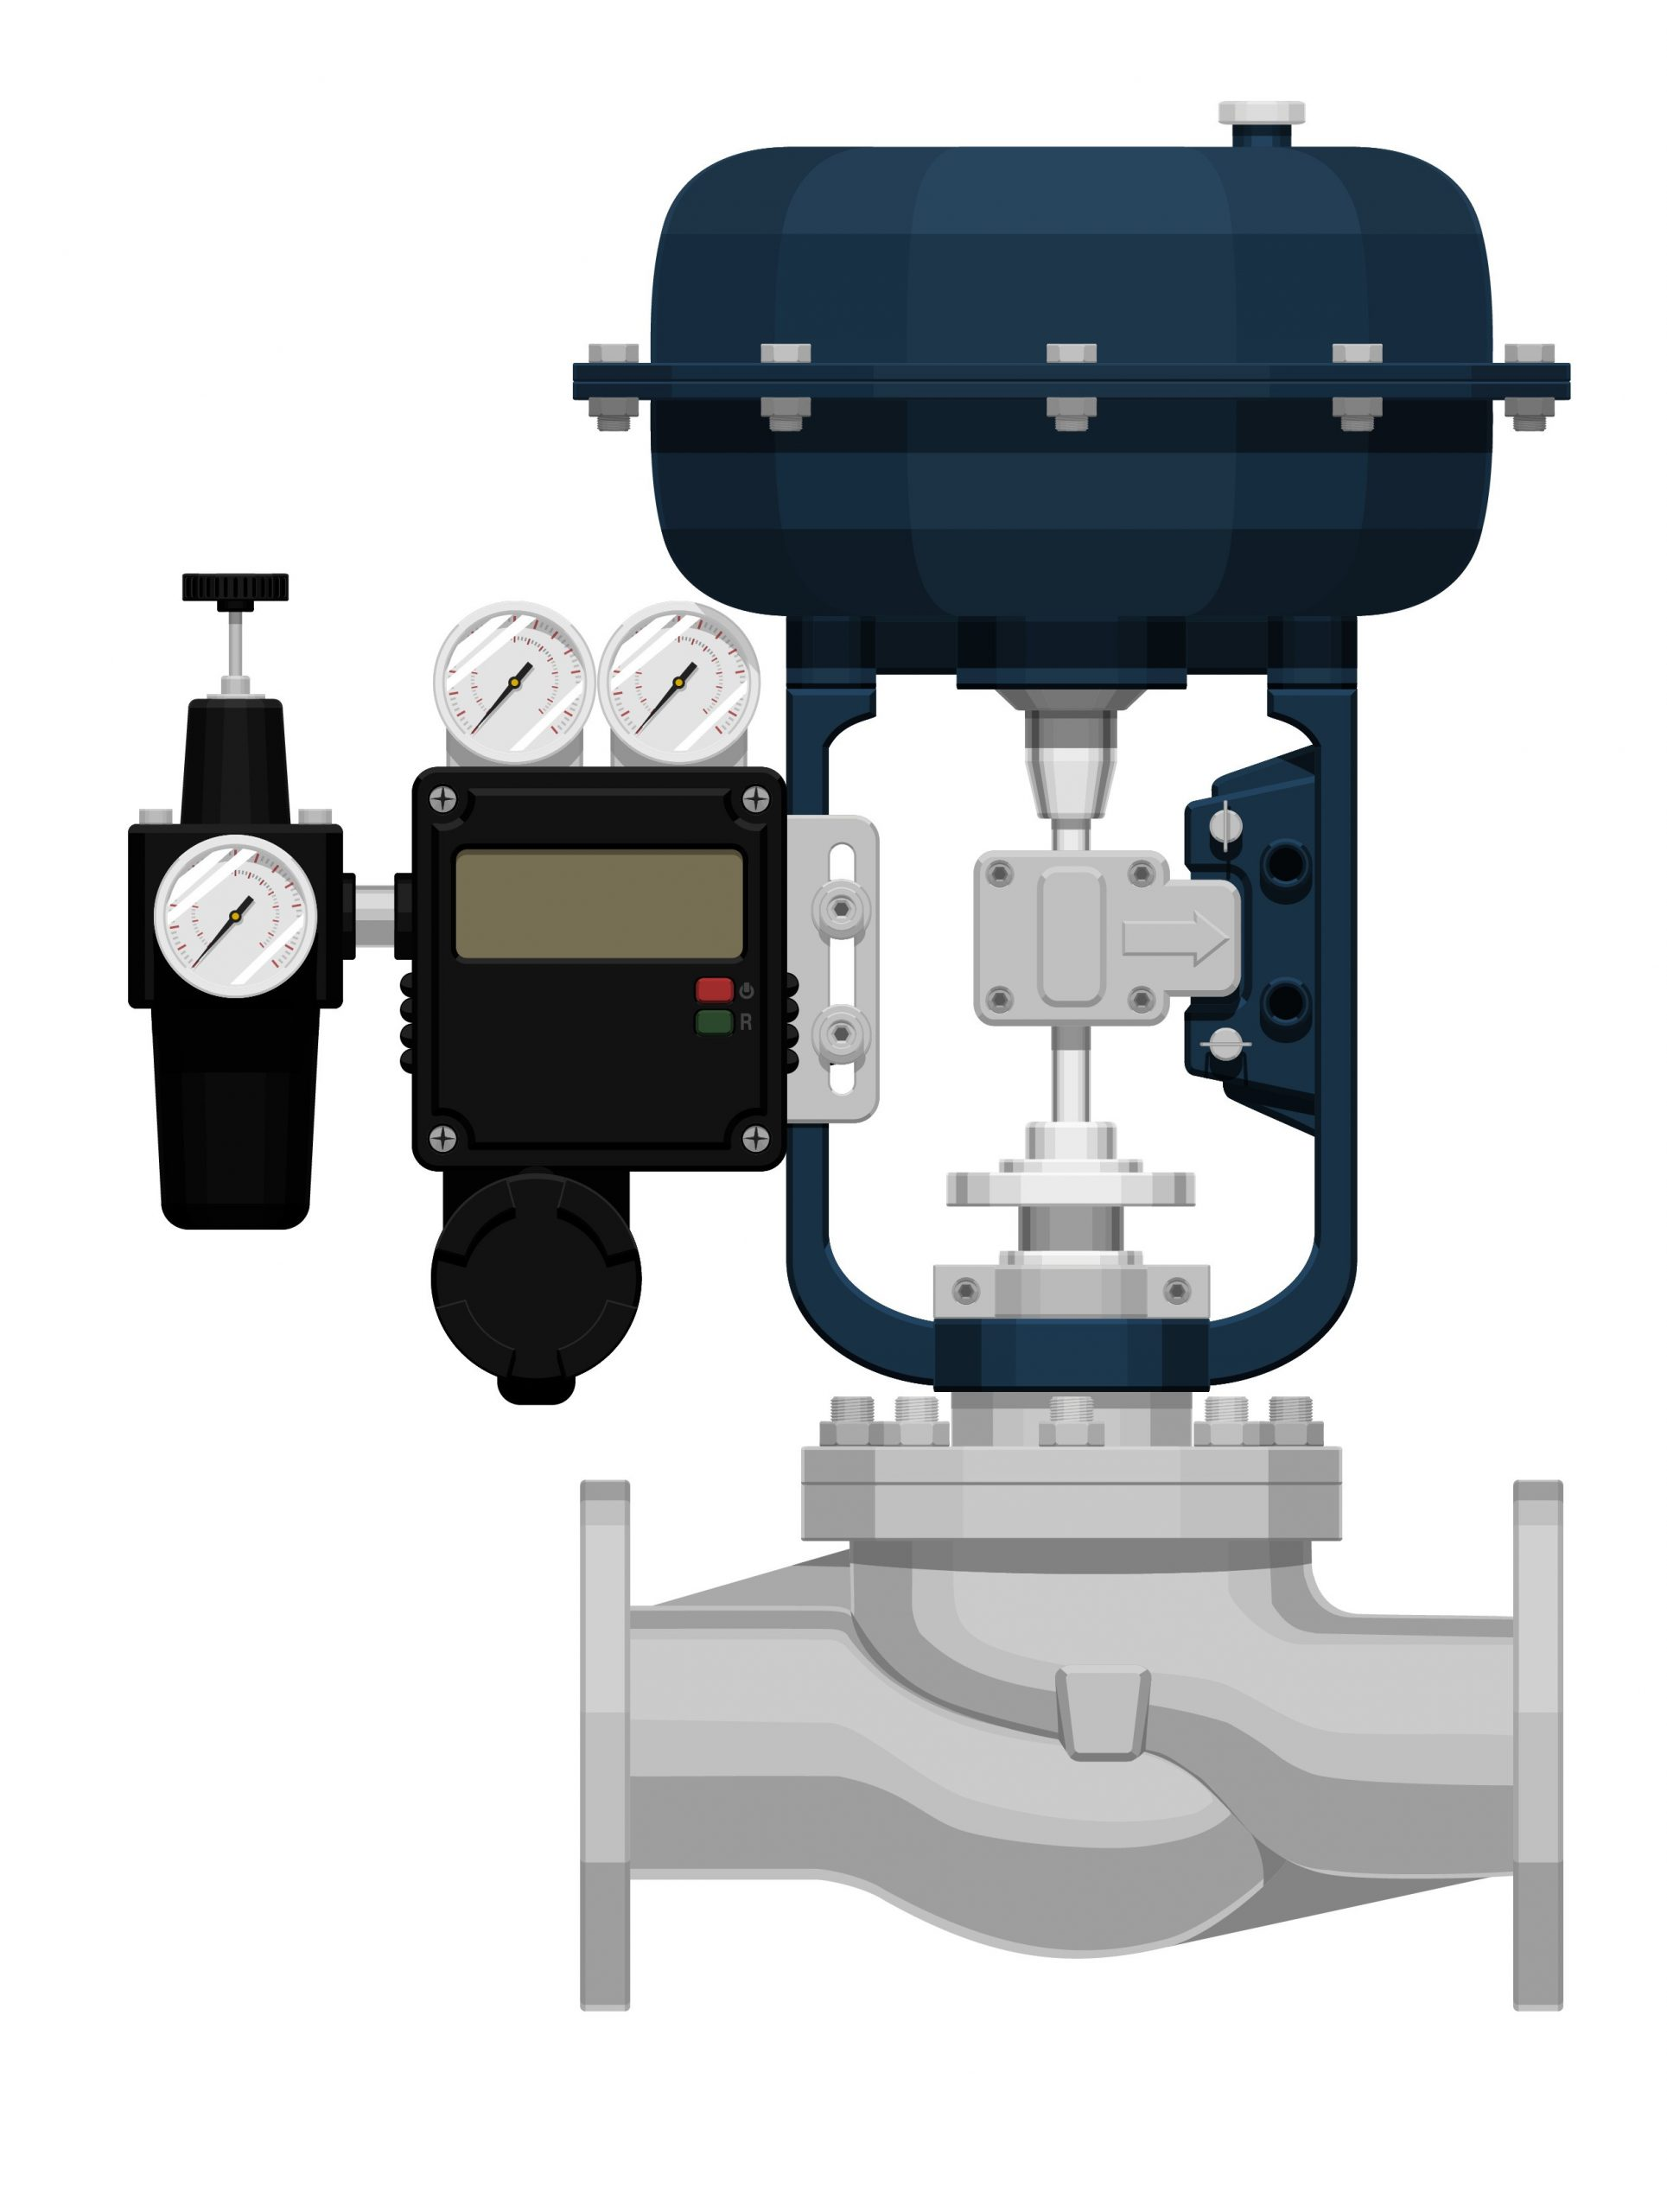 Image shows globe body control valve with diaphragm pneumatic actuator, and positioner, and filter regulator gauge.